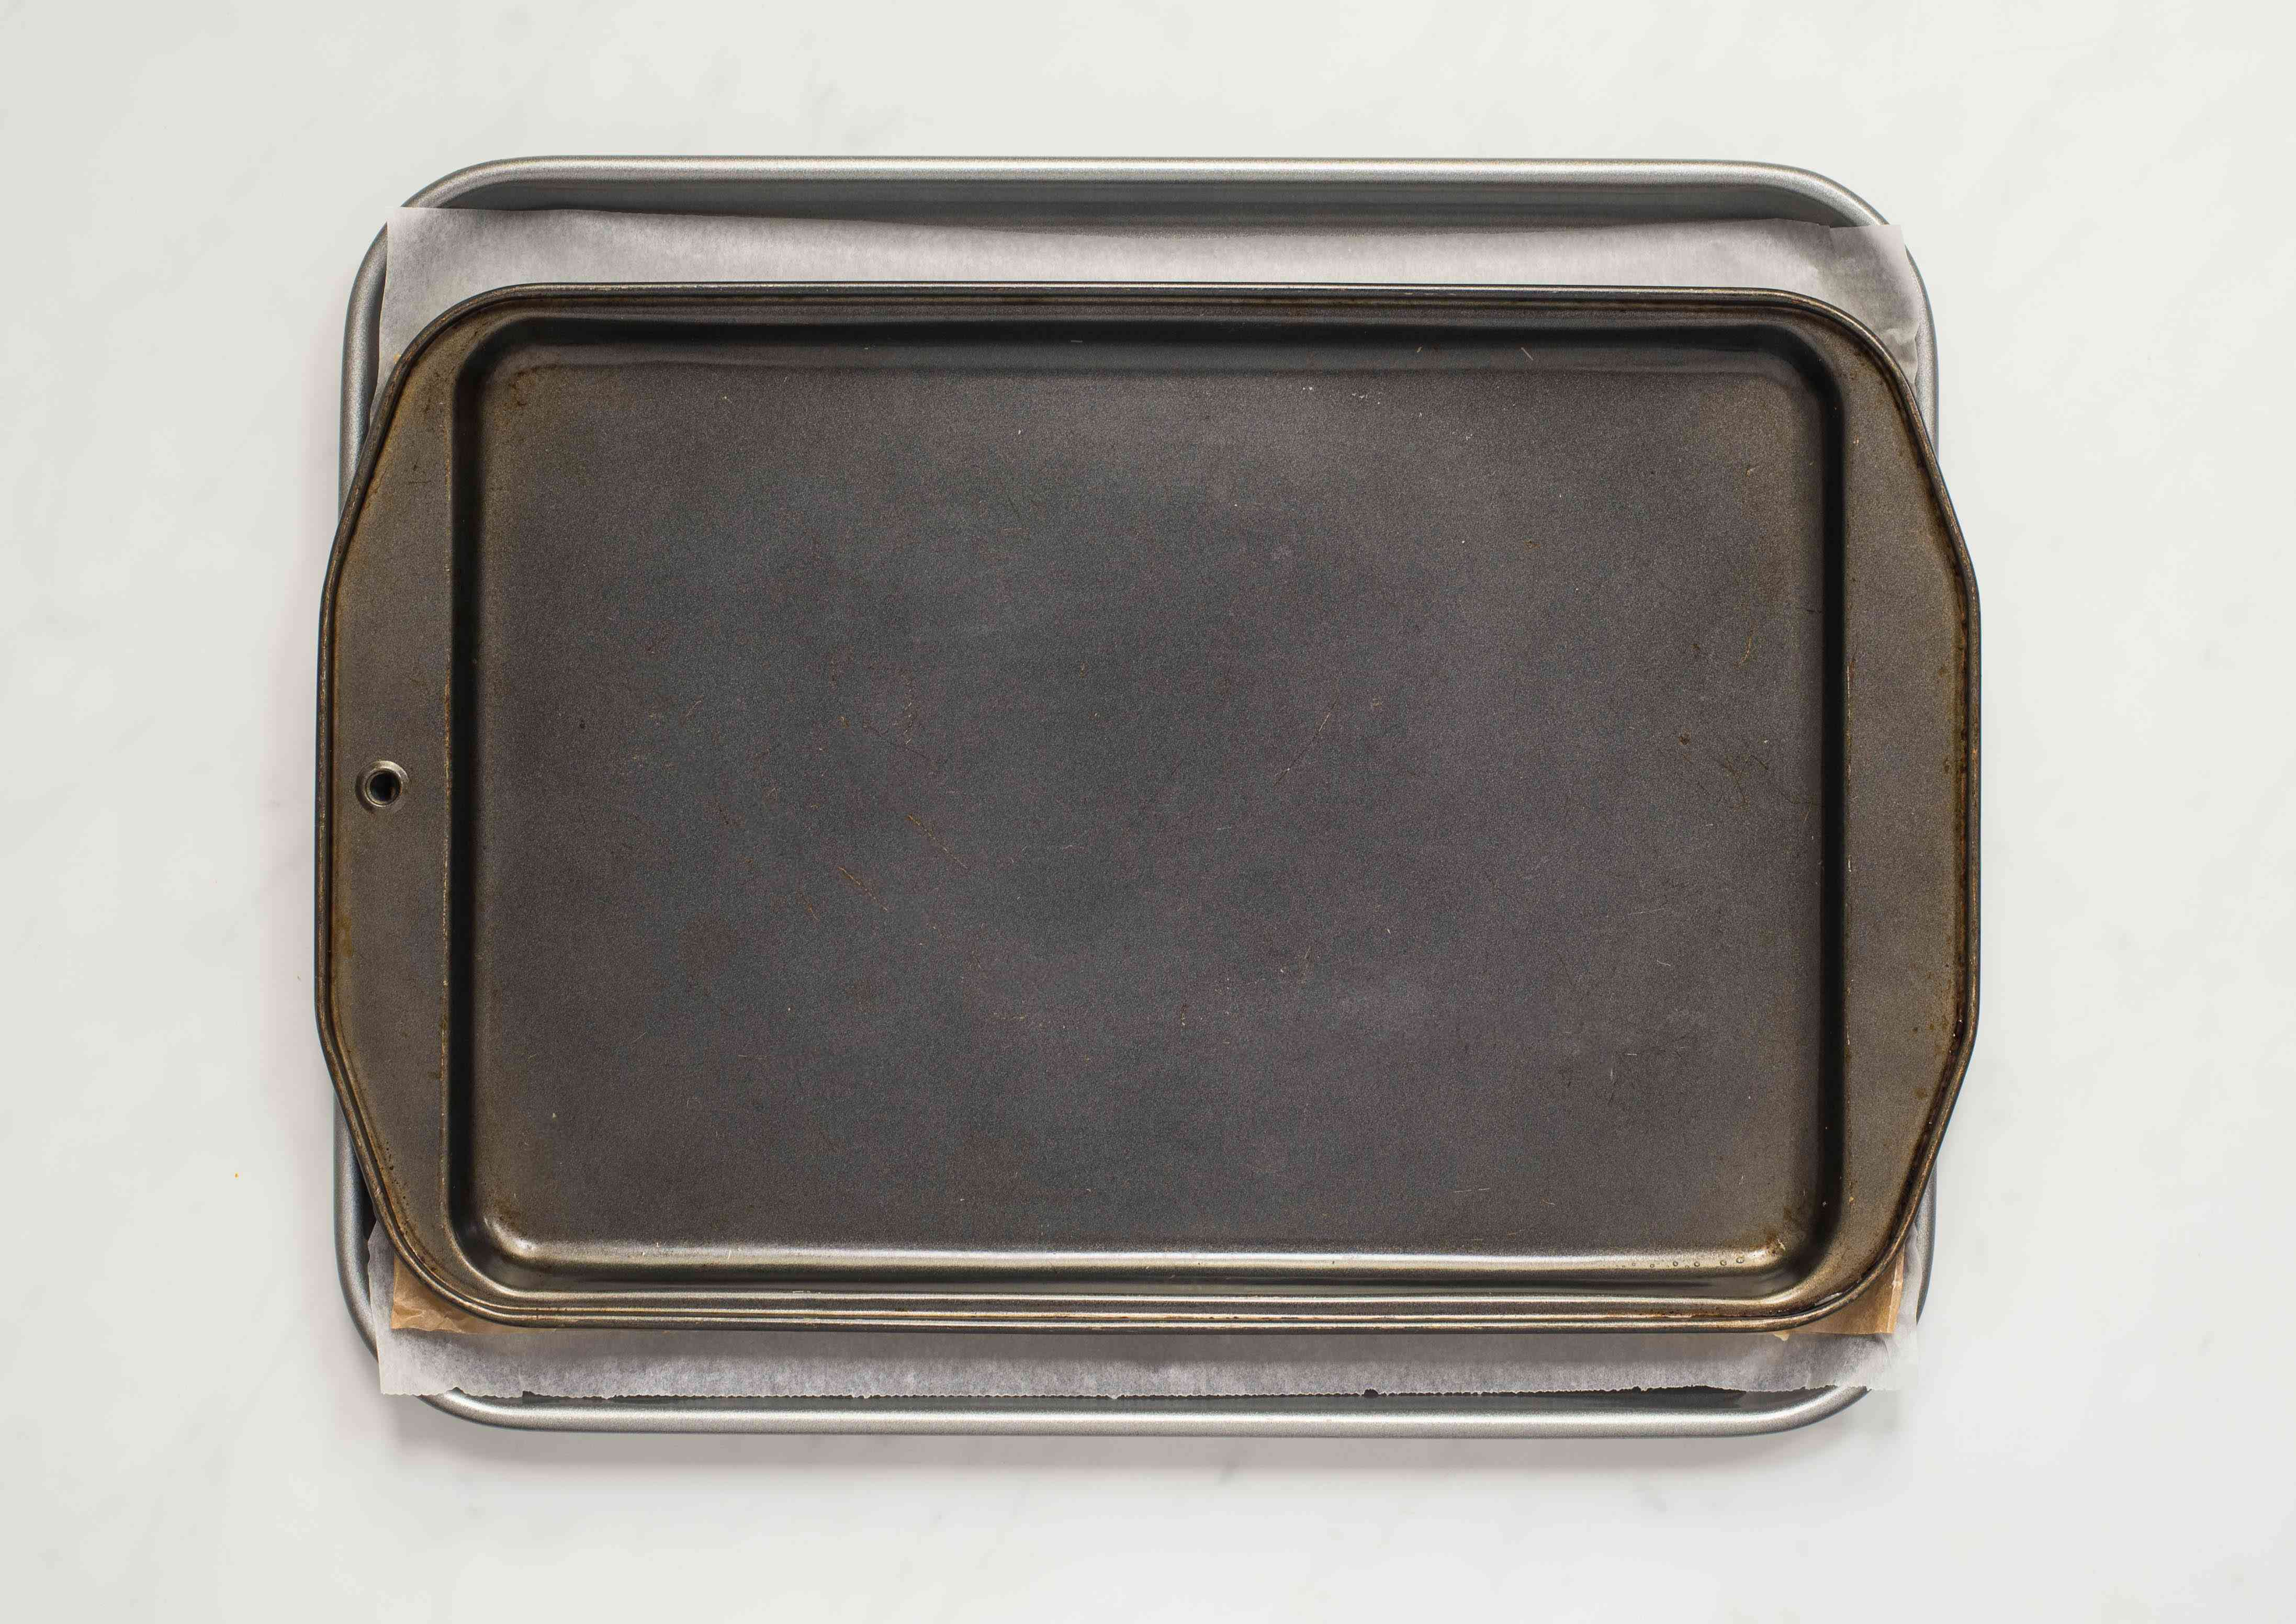 Weighing down the dough with a baking pan